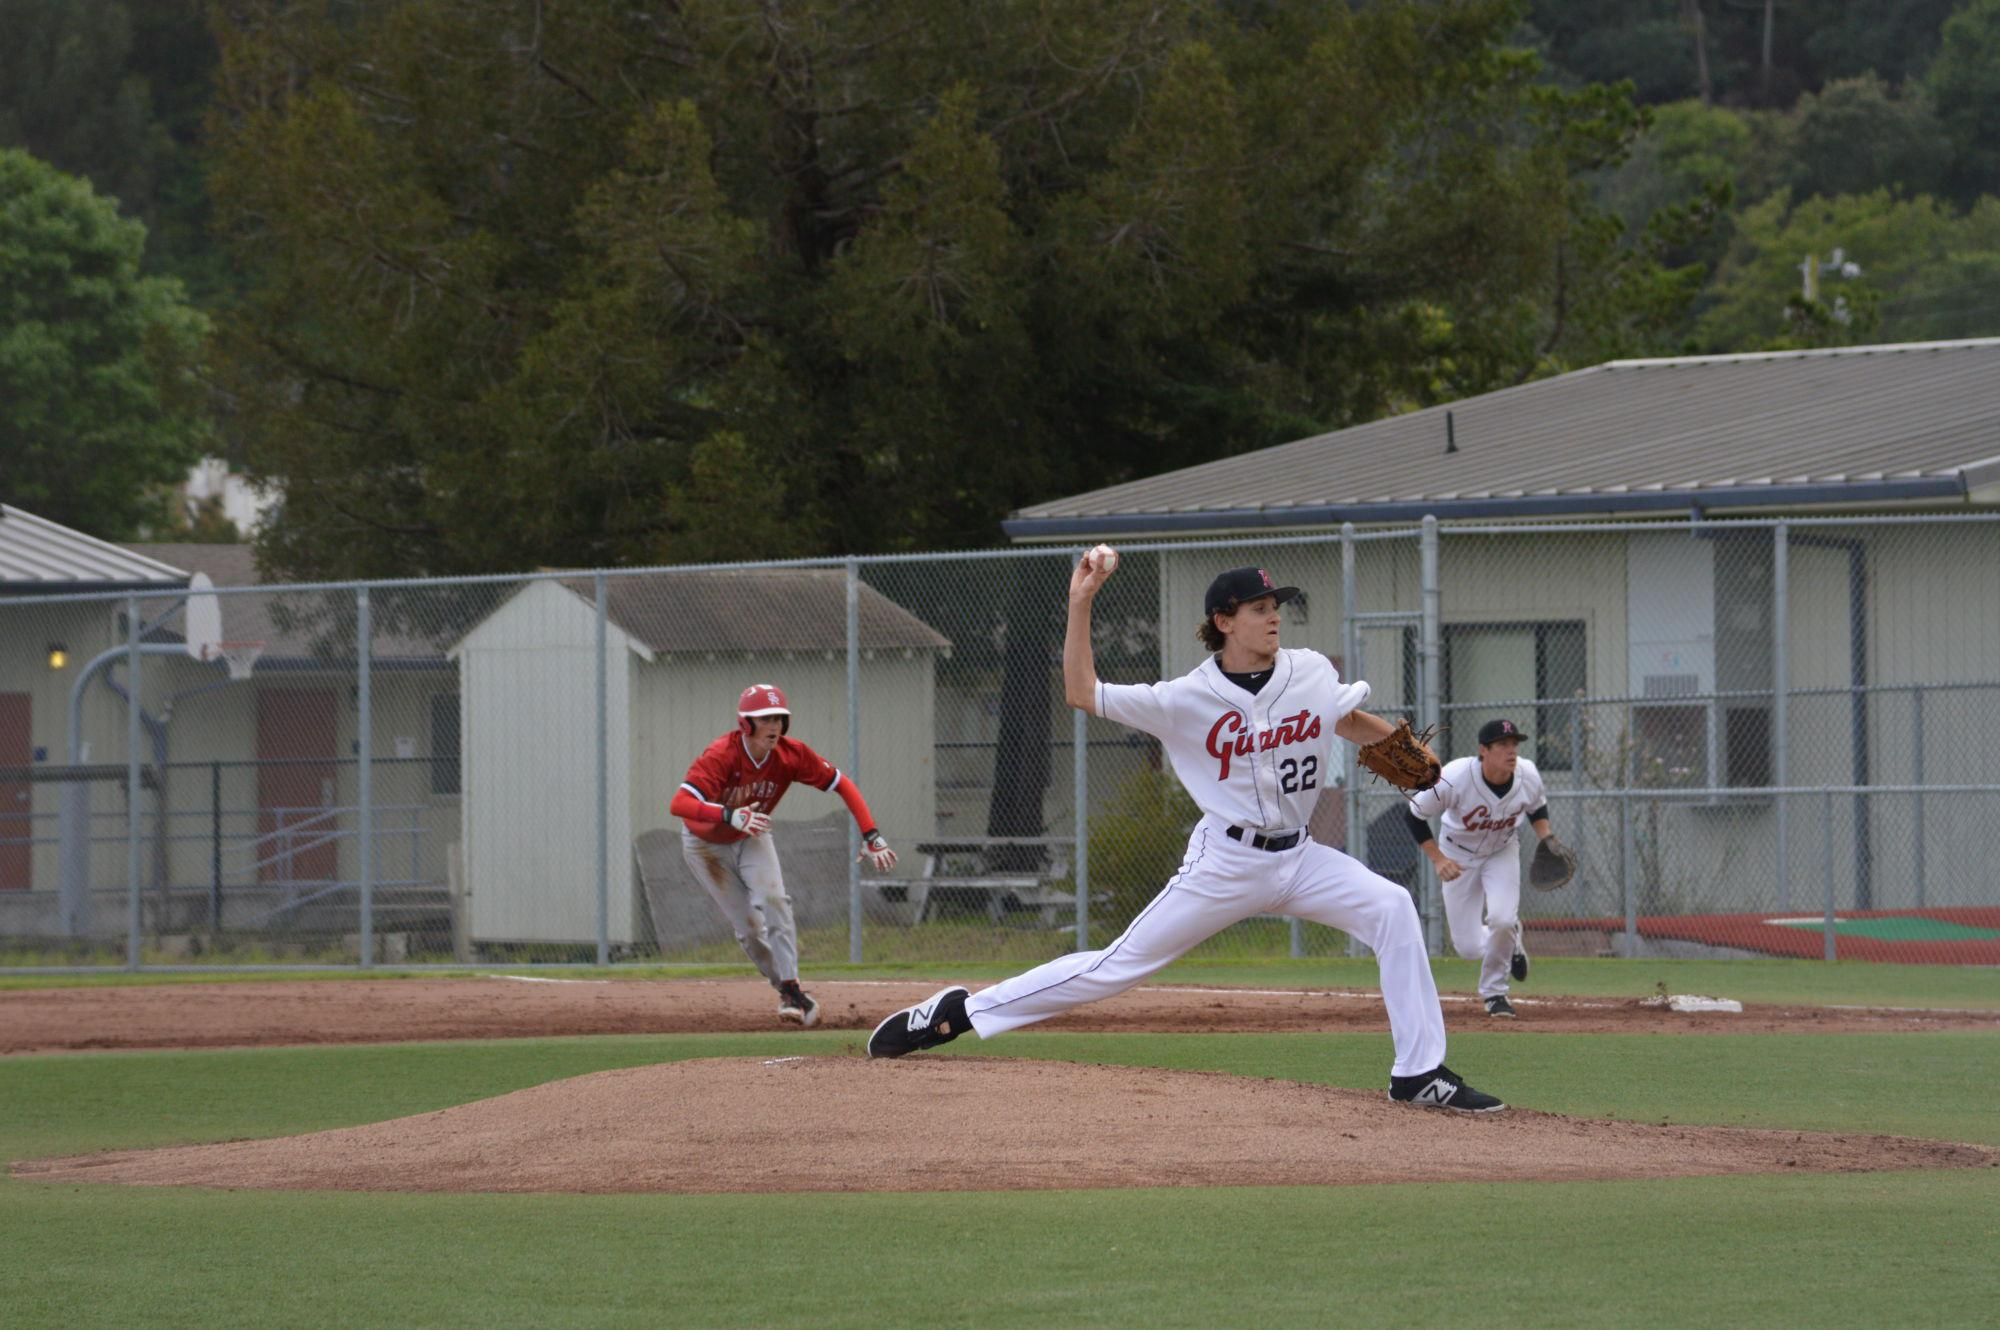 Photo Gallery: Boys' varsity baseball shuts out San Rafael